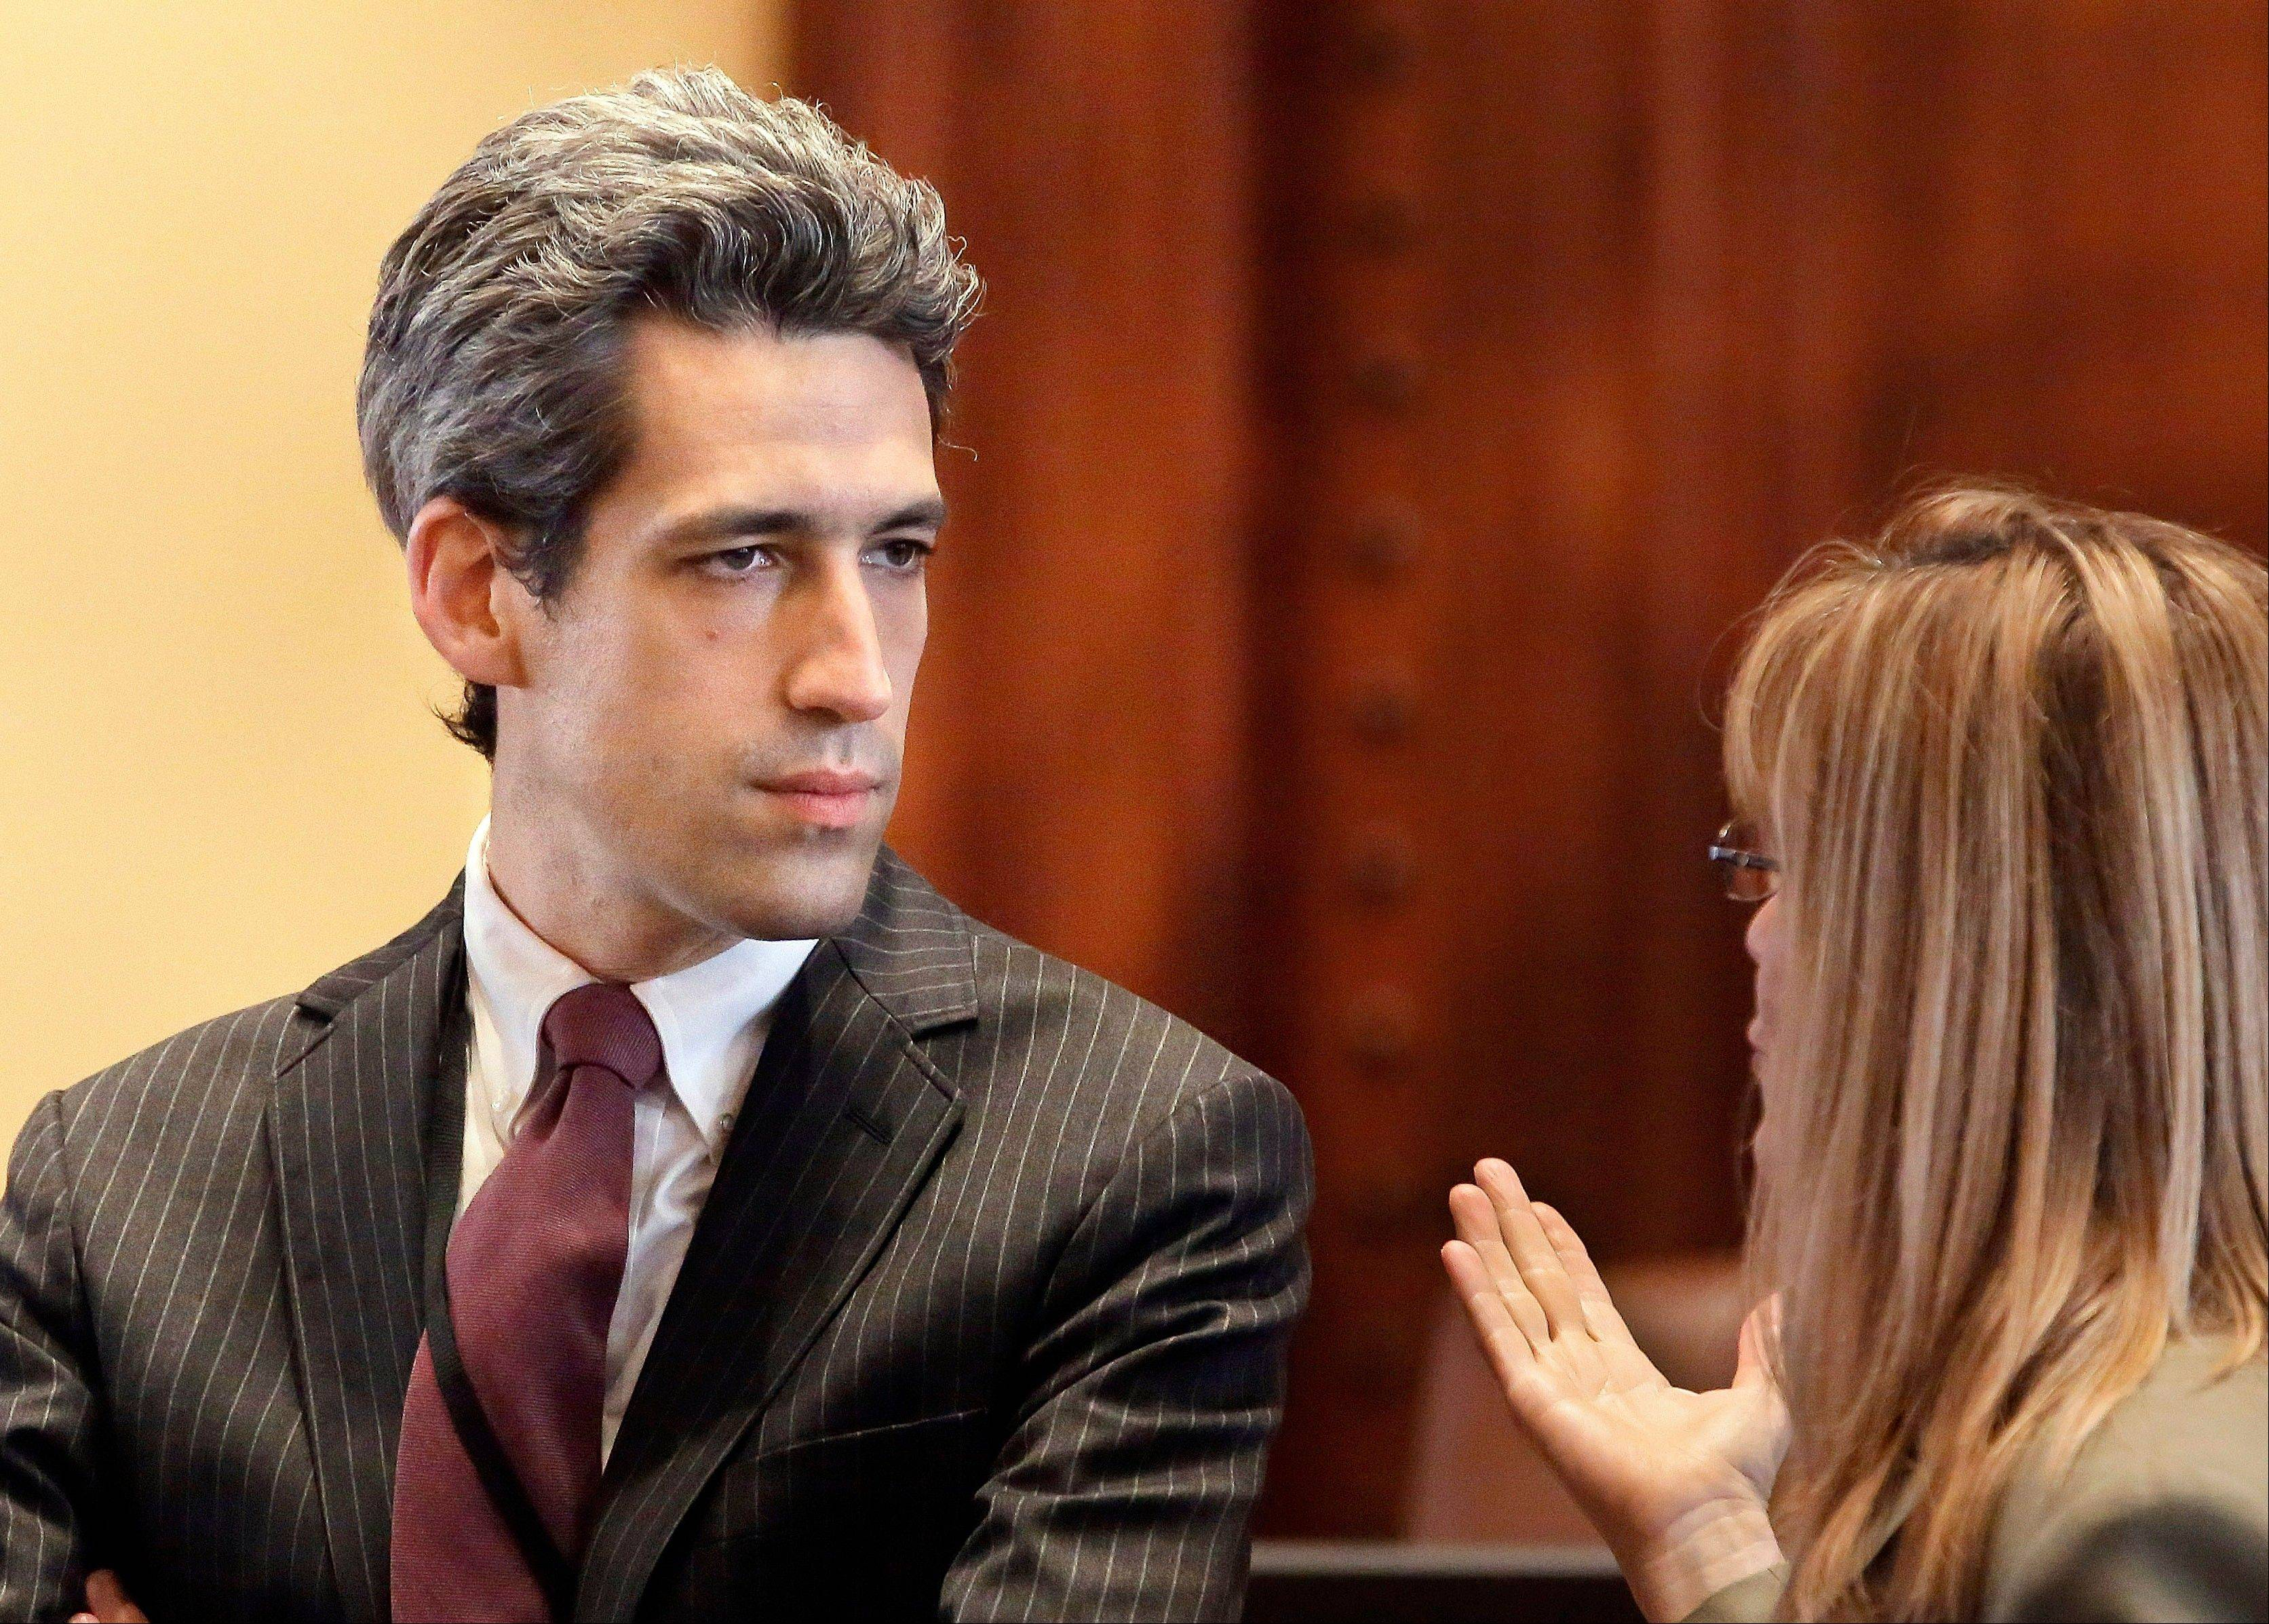 Associated Press Illinois Sen. Daniel Biss, D-Skokie speaks with a legislative staffer at the state Capitol in Springfield. A report to be released Tuesday says an Illinois $160 billion pension plan ultimately won�t make much of a dent in the state�s growing deficits.